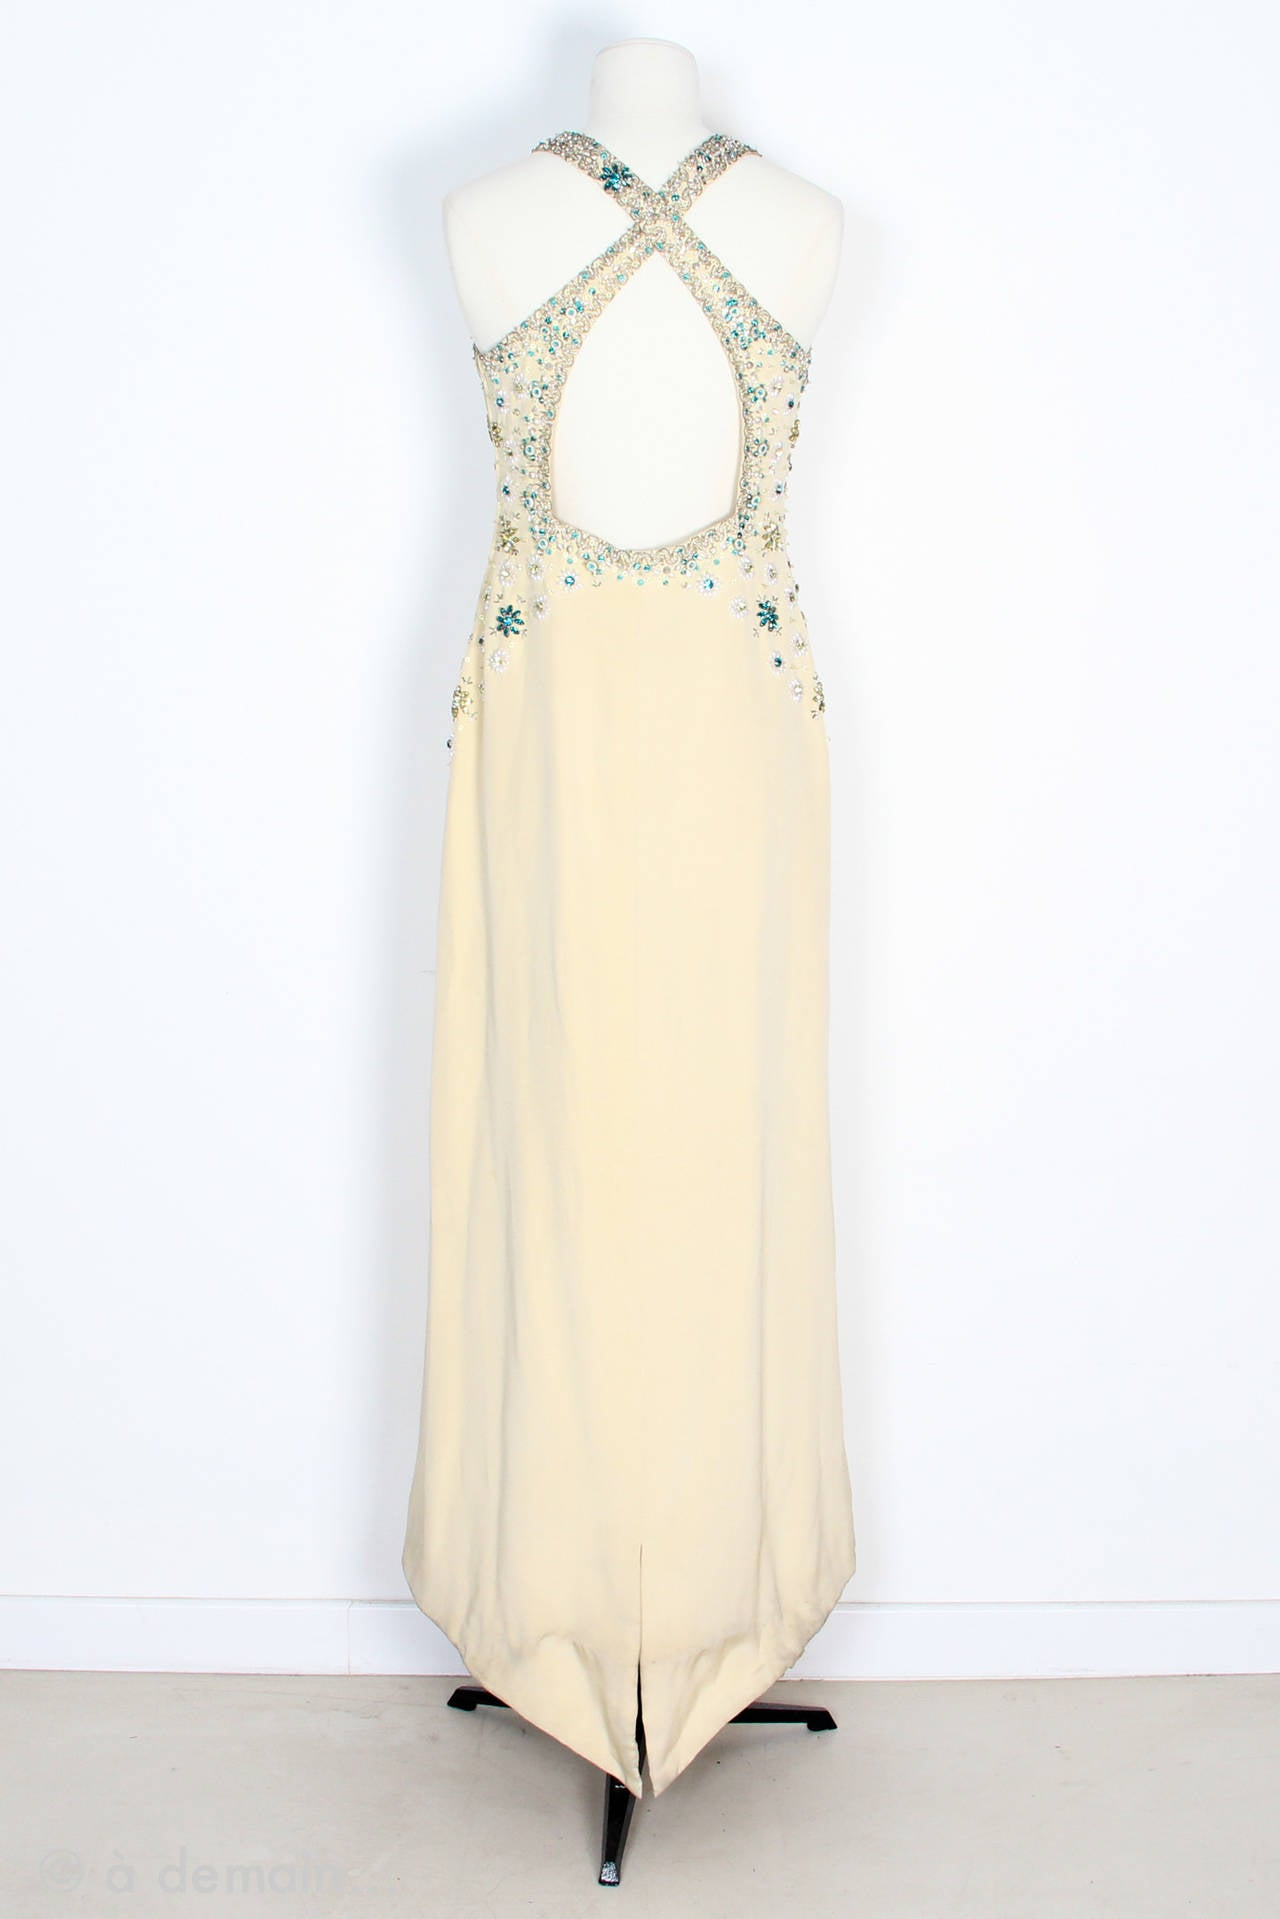 1963 Evening Dress designed by Marie Clouet and embroidered by Lesage In Good Condition For Sale In Paris, FR